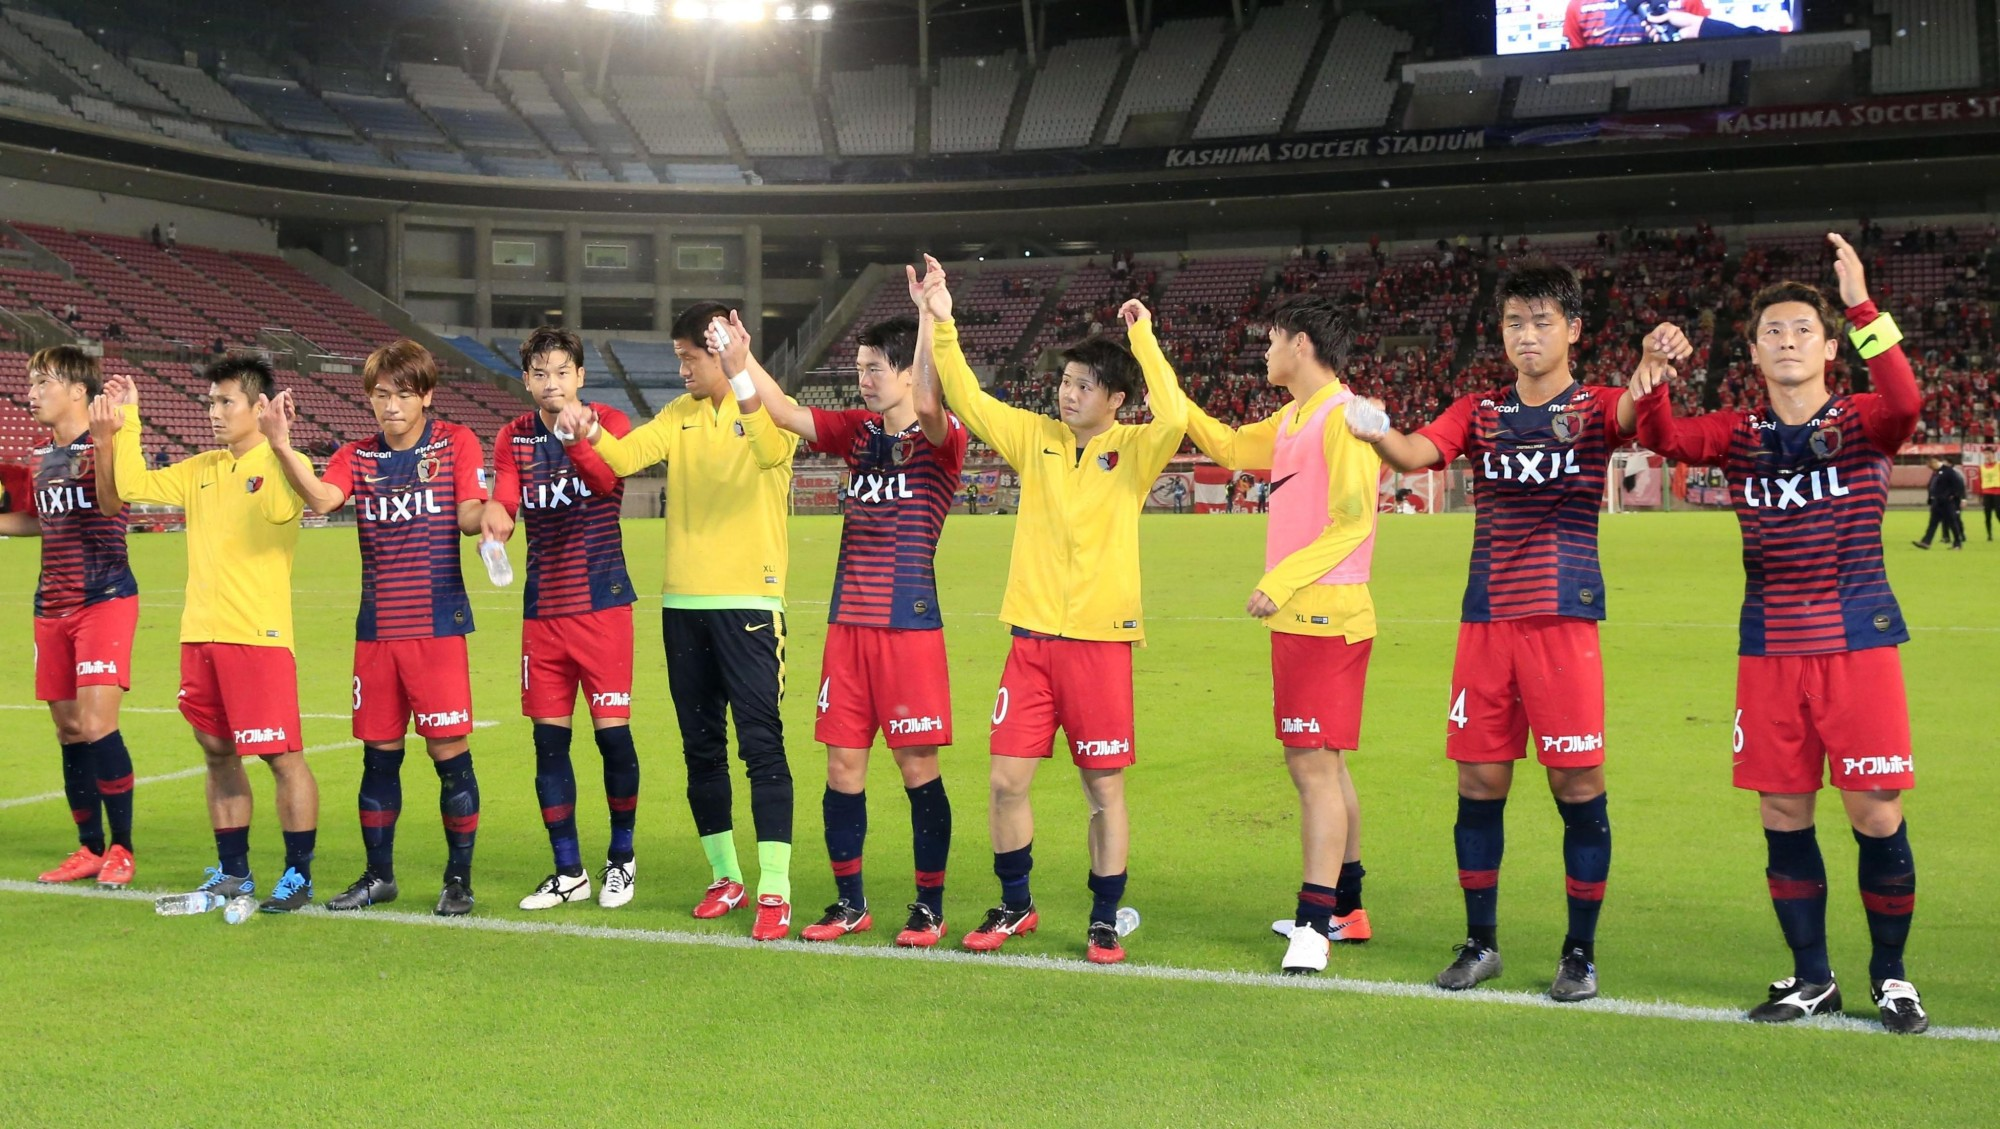 Antlers players salute fans at Kashima Stadium after defeating Honda FC on Wednesday in the quarterfinals of the Emperor's Cup.   KYODO